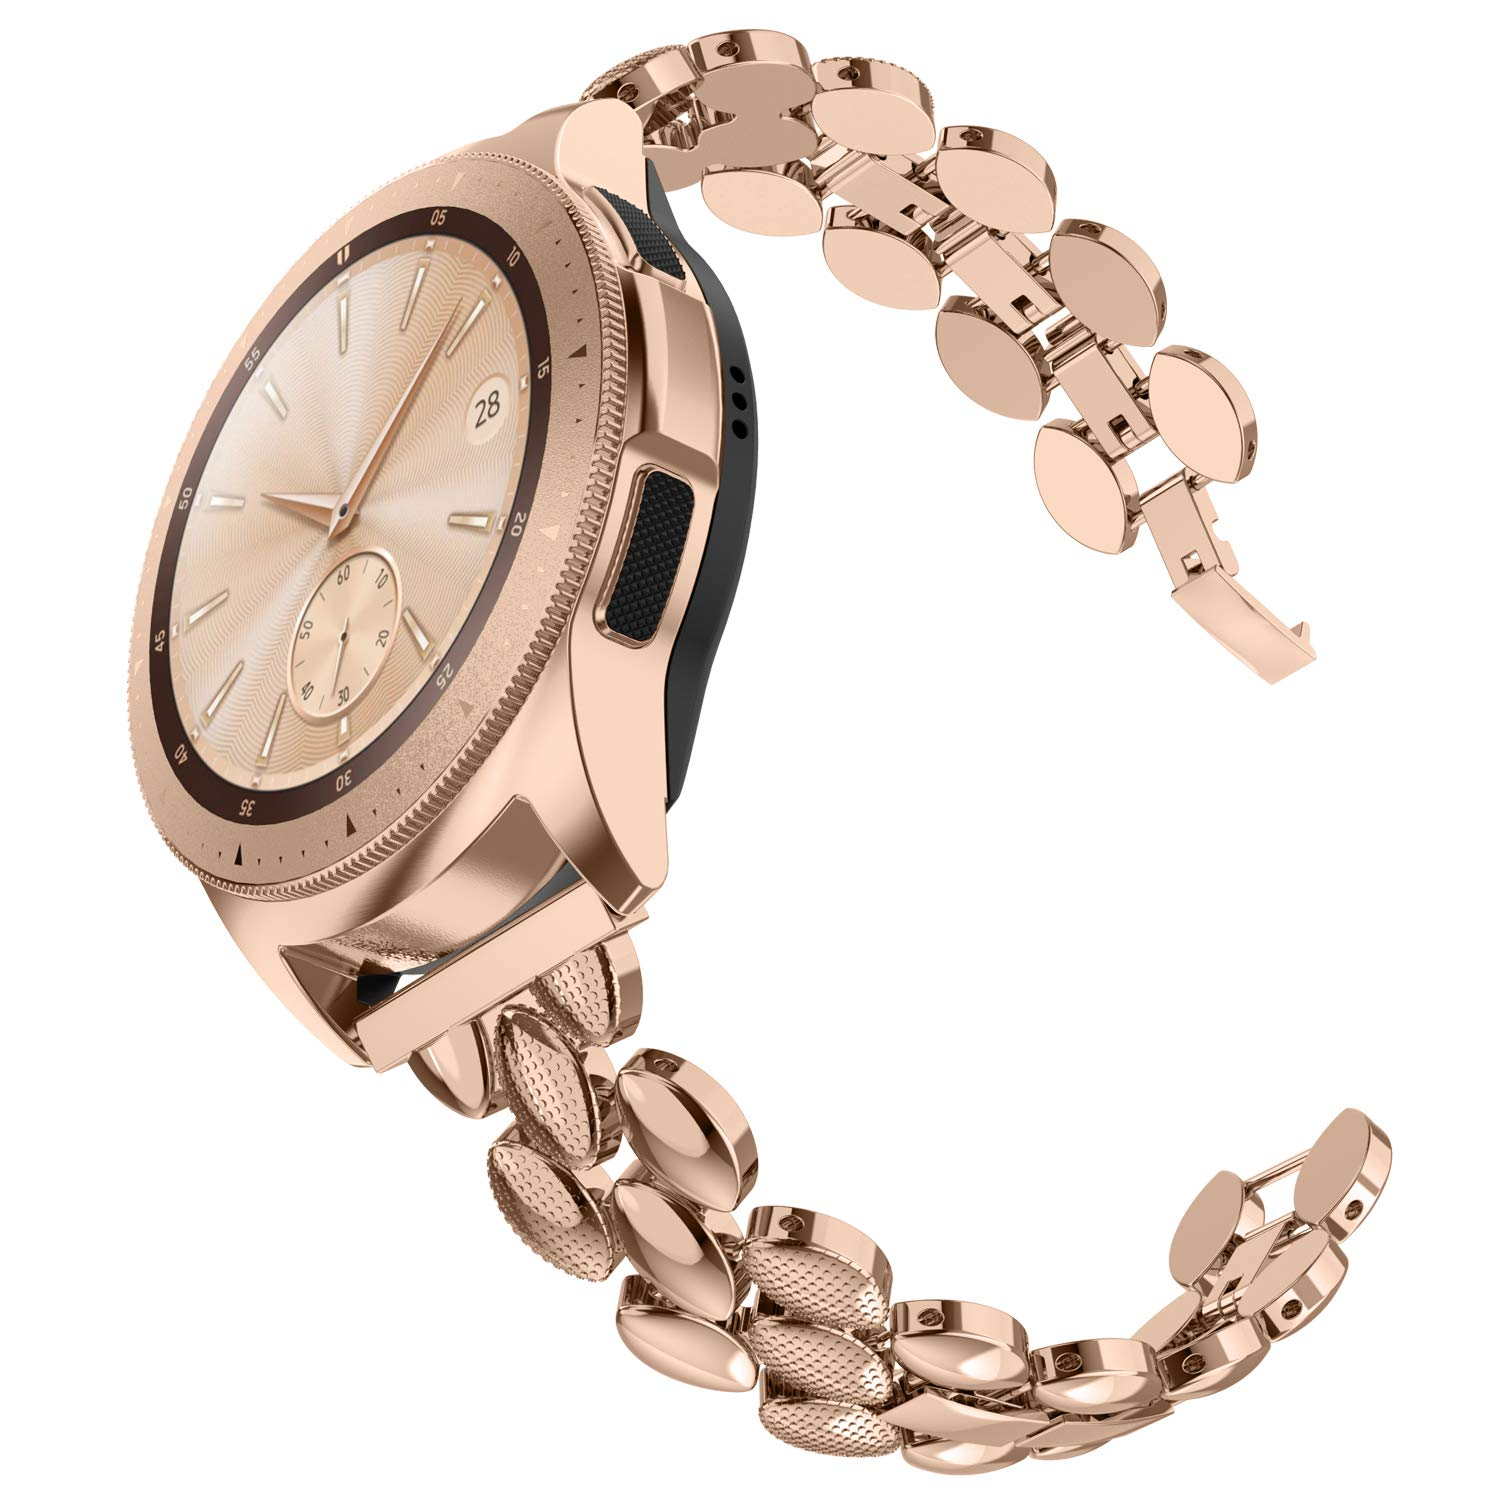 TOTOUTHS Compatible with Samsung Galaxy Watch 42mm Bands Women Stainless Steel Bracelet Replacement for Galaxy Active 2 40mm 44mm/Gear S2 Classic/Gear Sport Metal Strap Wristband 20mm Pins Rose Gold by TOYOUTHS